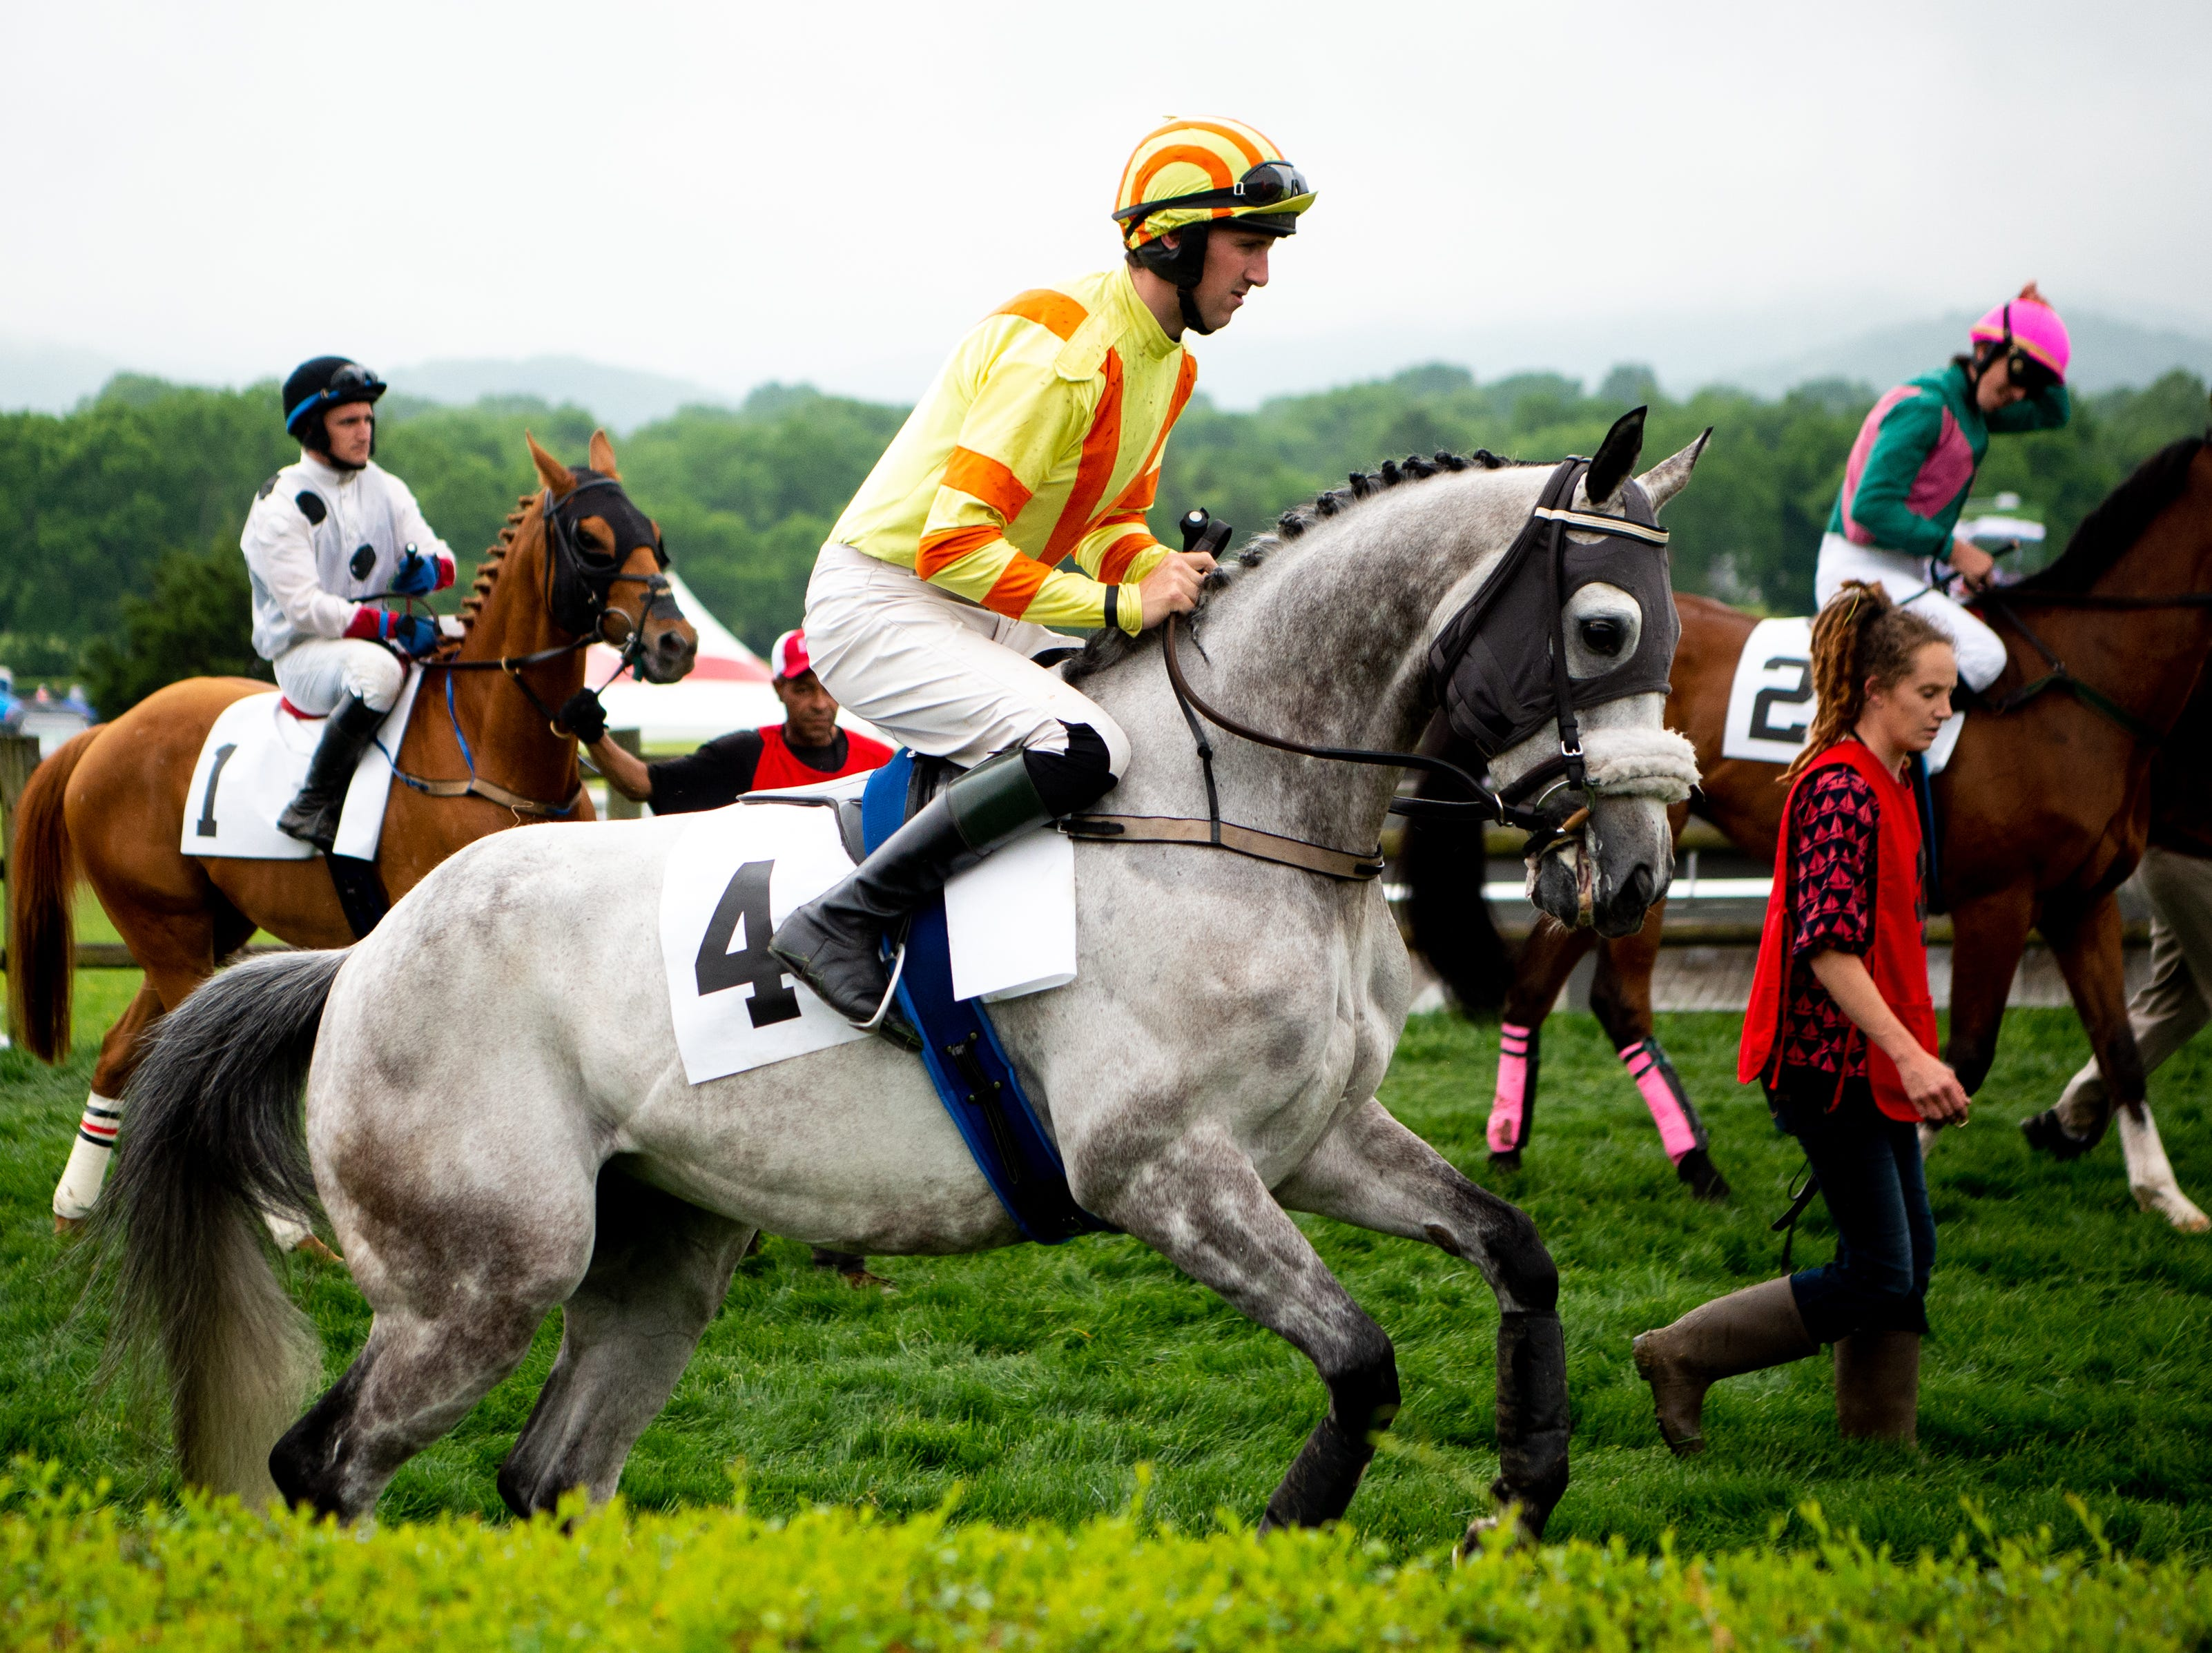 Jack Doyle and Mercoeur prepare for the sixth race of the Iroquois Steeplechase at Percy Warner Park Saturday, May 11, 2019, in Nashville, Tenn.